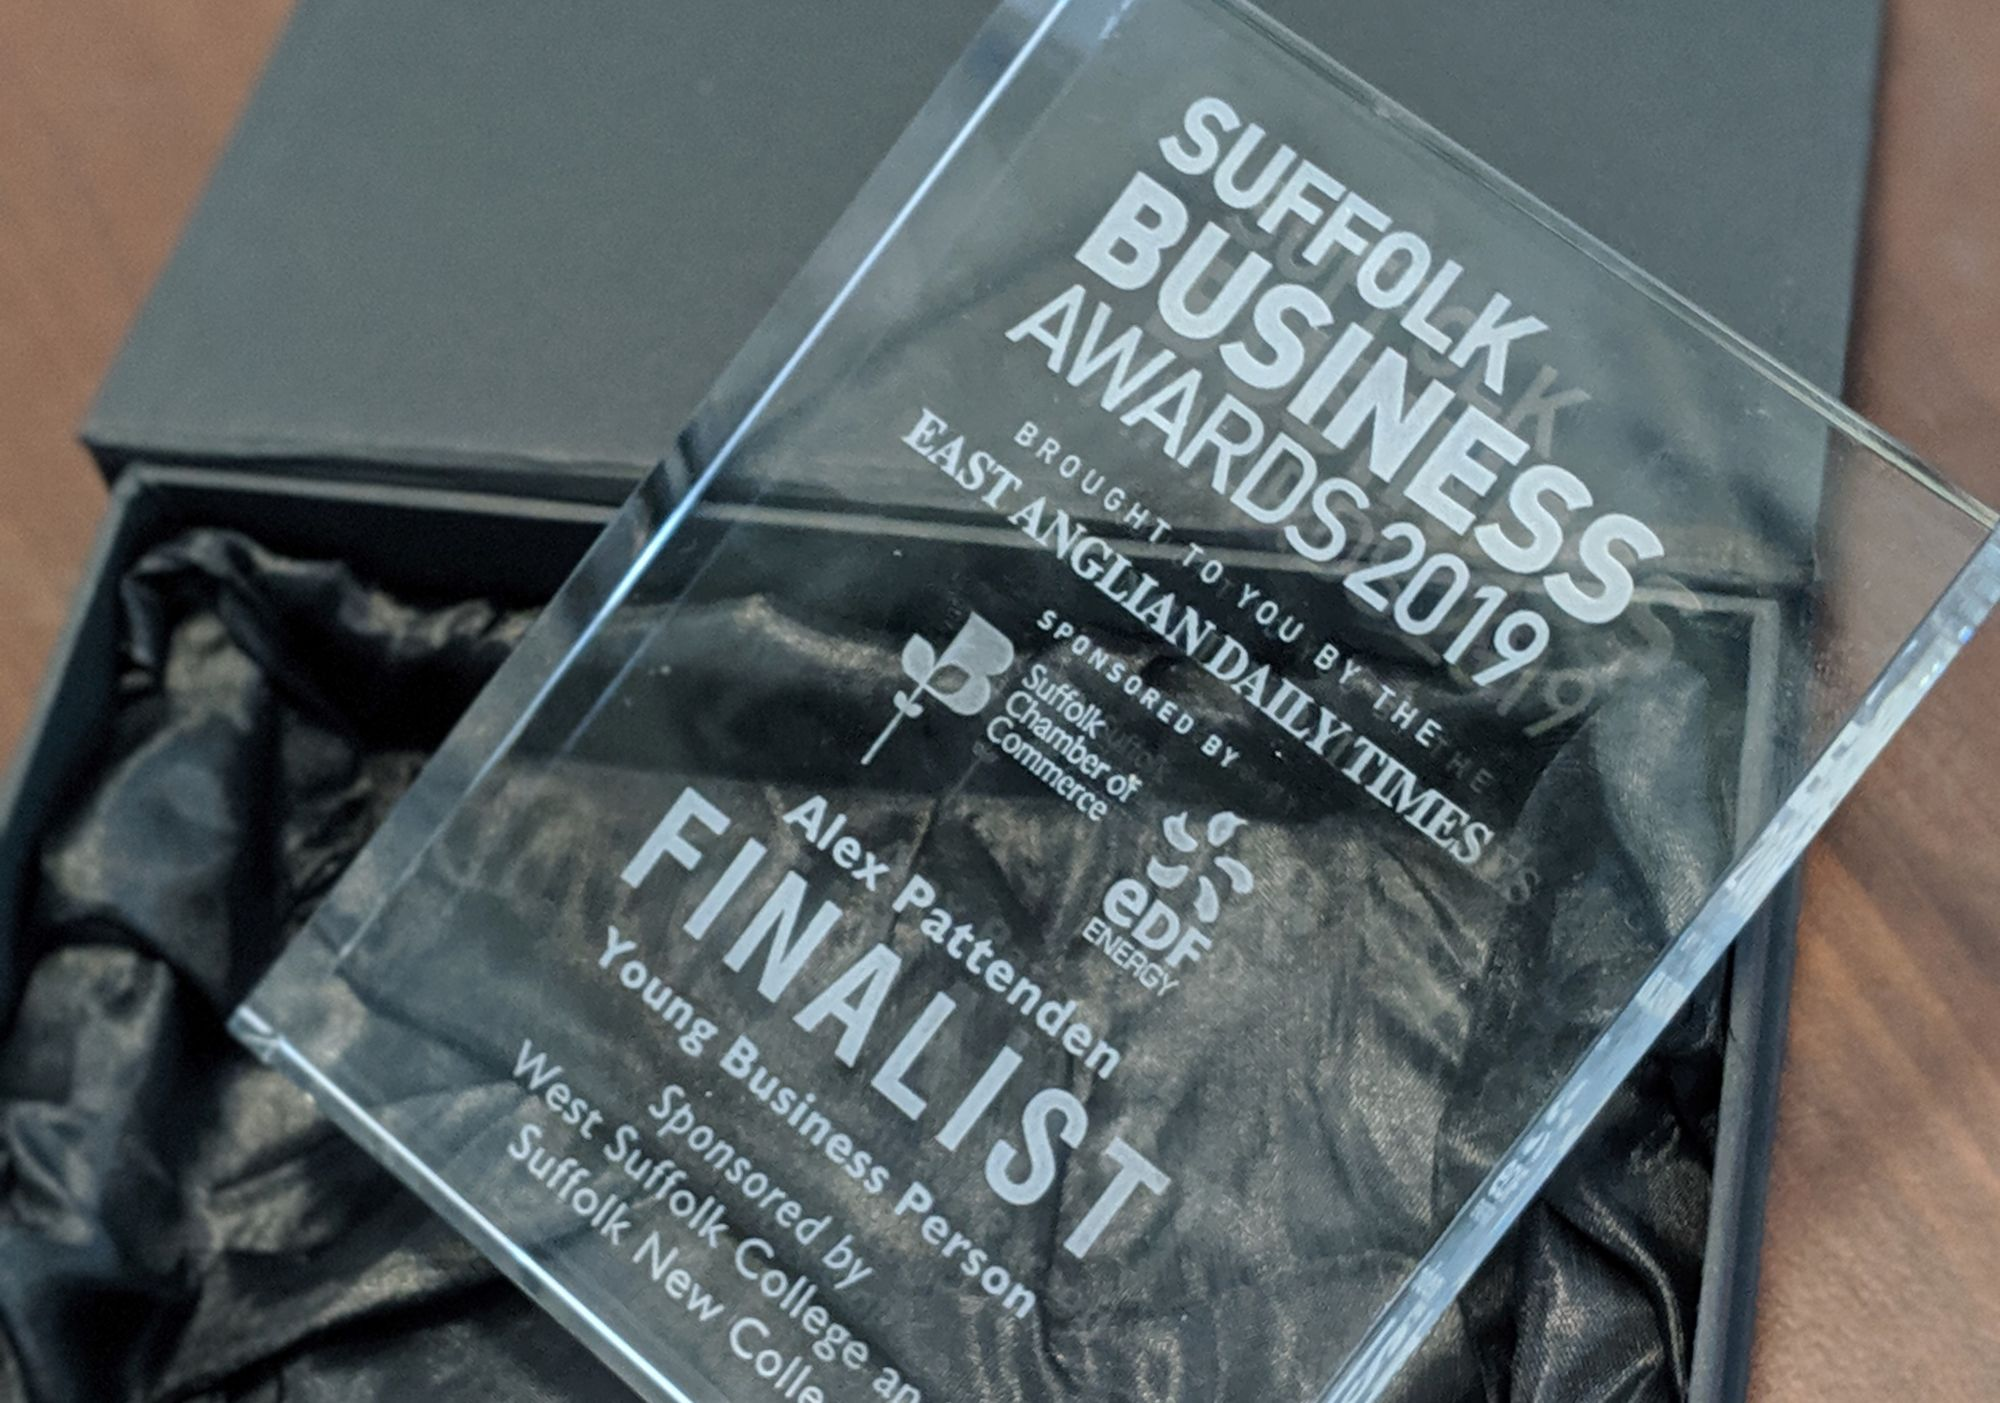 suffolk business awards 2019